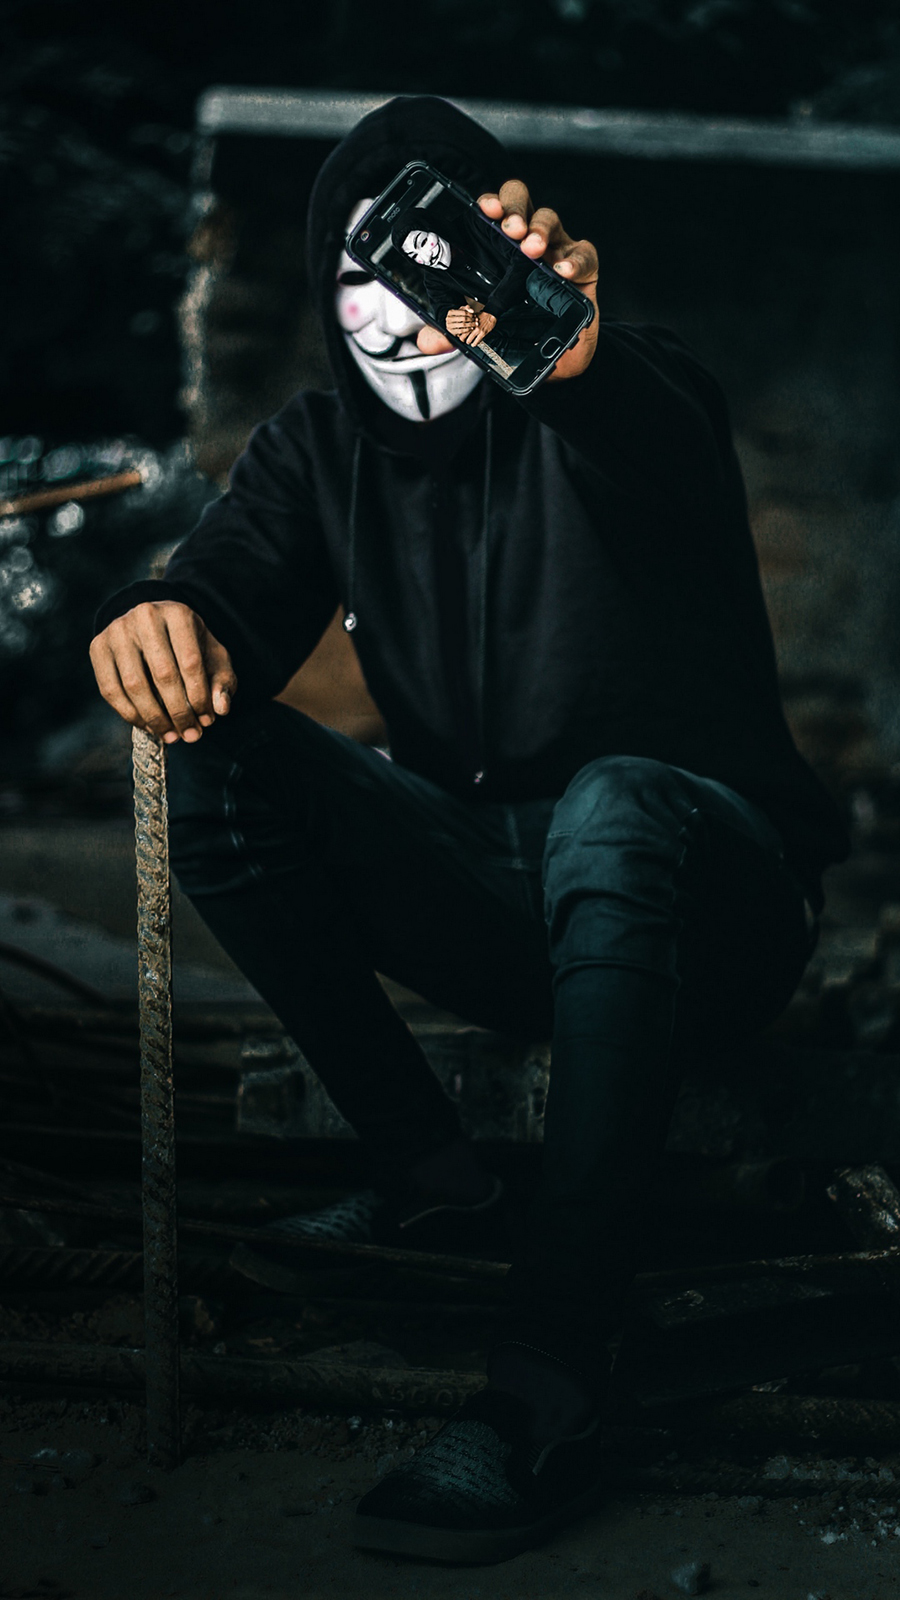 Masked Human Private HD Wallpapers Free Download